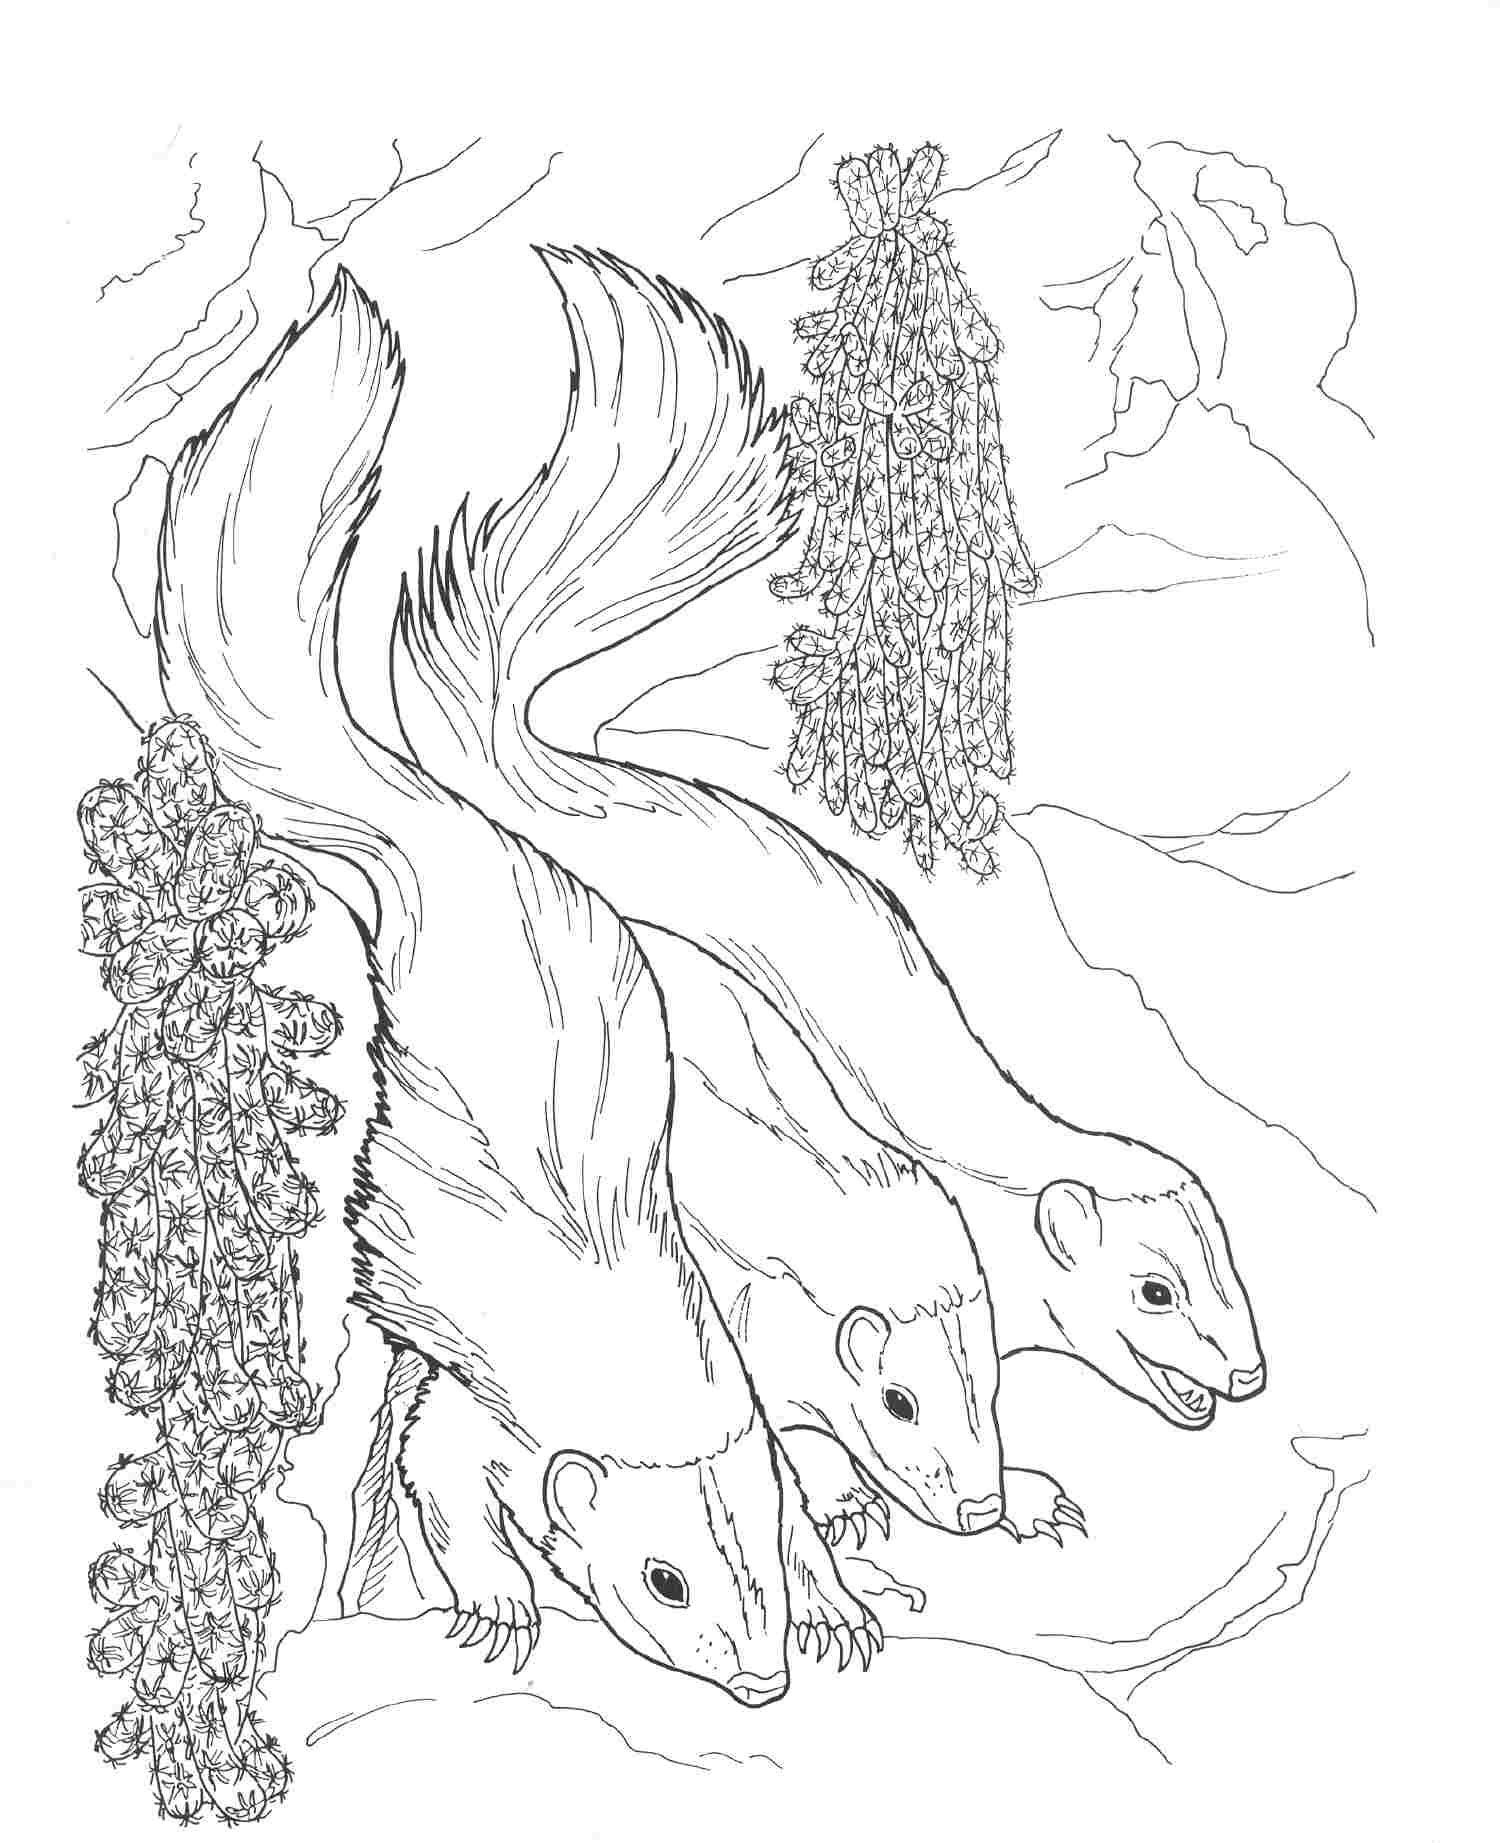 nocturnal animals coloring sheets top 10 porcupine coloring pages for toddlers nocturnal coloring sheets nocturnal animals